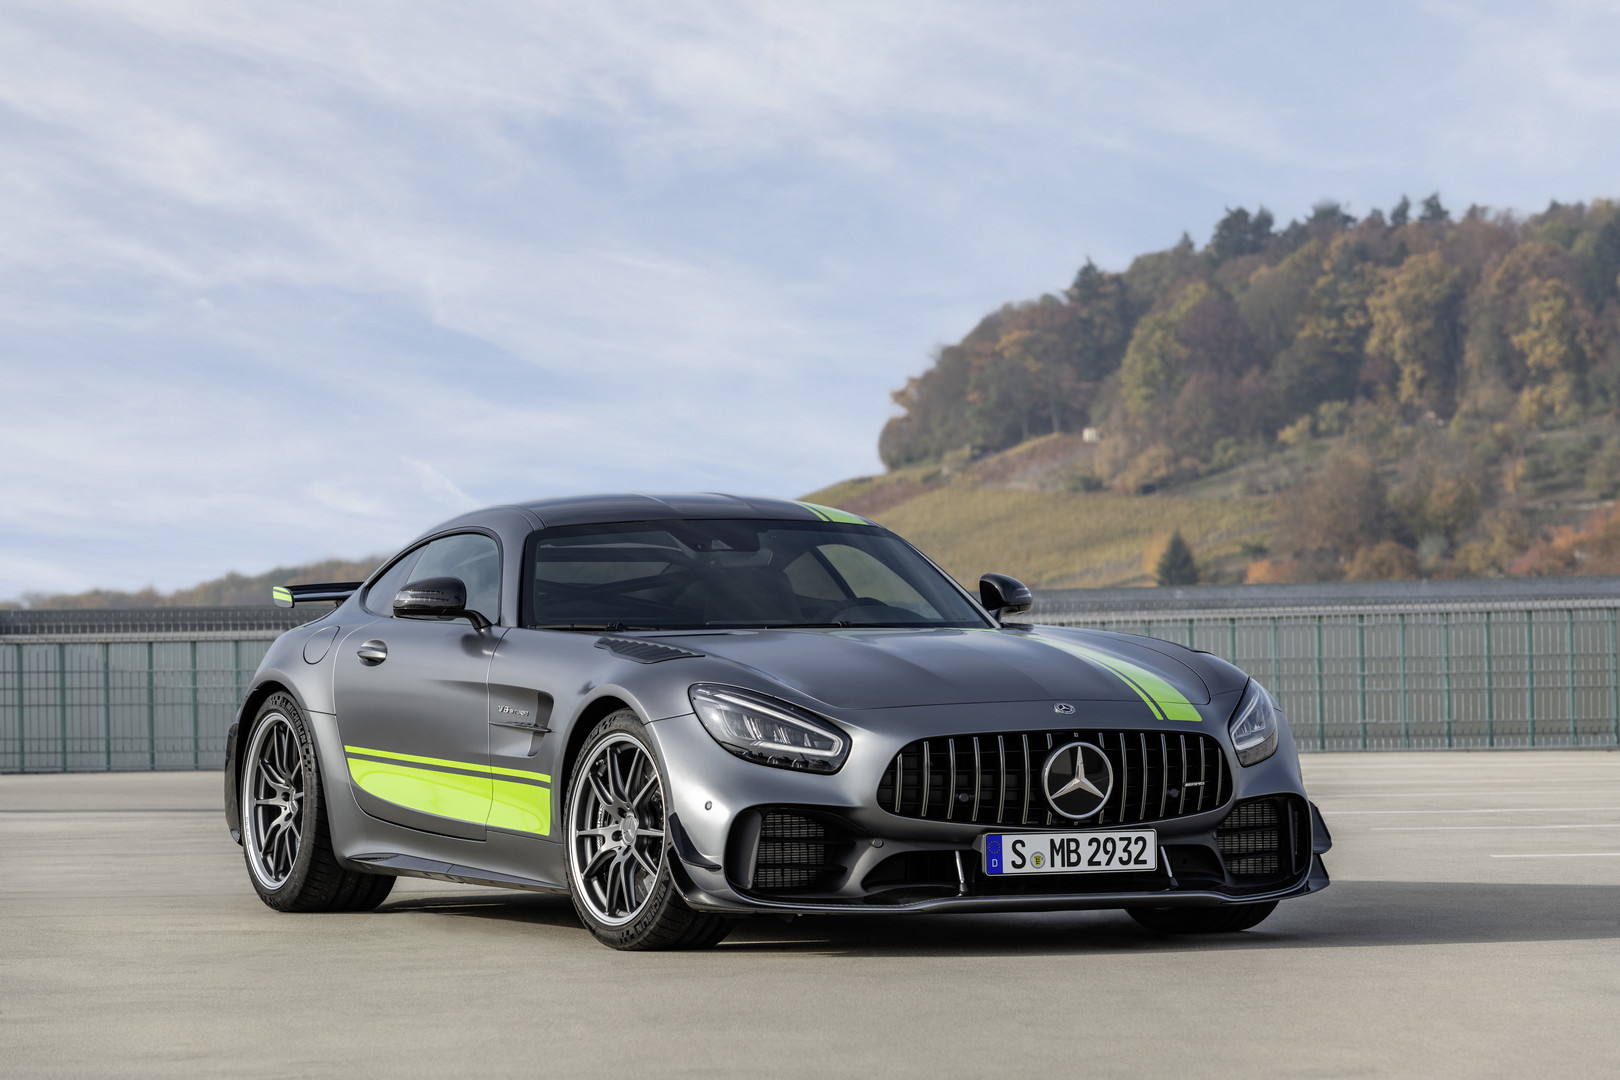 Amg Gt 2019 Mercedes Amg Gt R Pro Officially Revealed Gtspirit